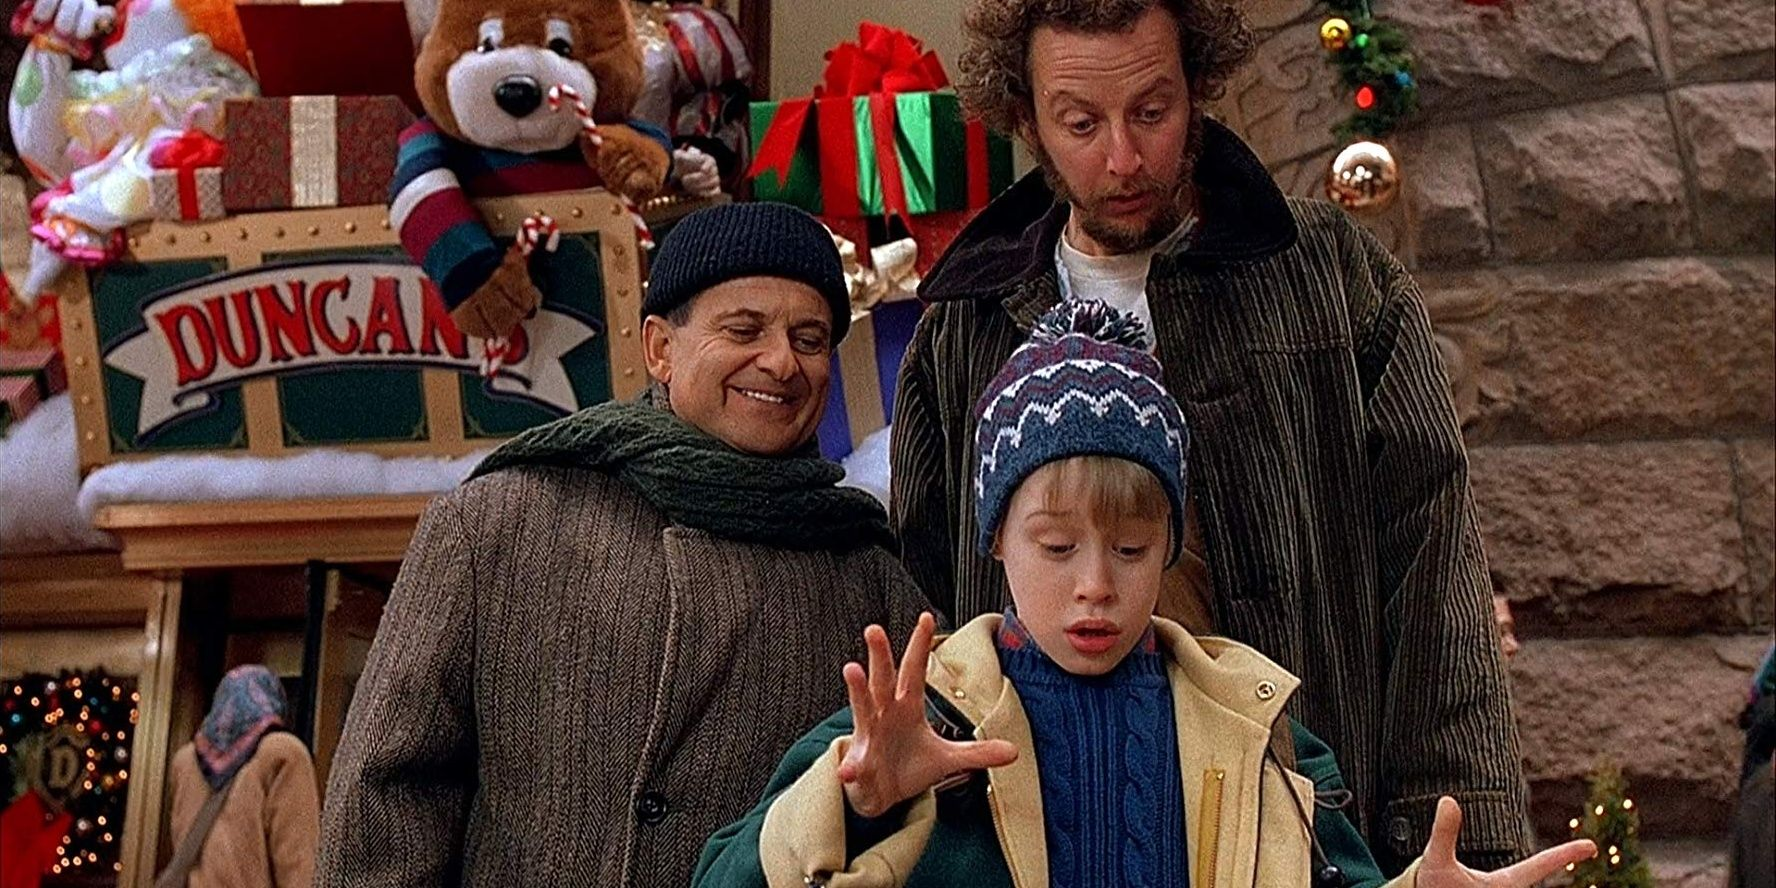 https://static0.srcdn.com/wordpress/wp-content/uploads/2019/11/Better-Movie-Sequels-Home-Alone-2-Cropped.jpg